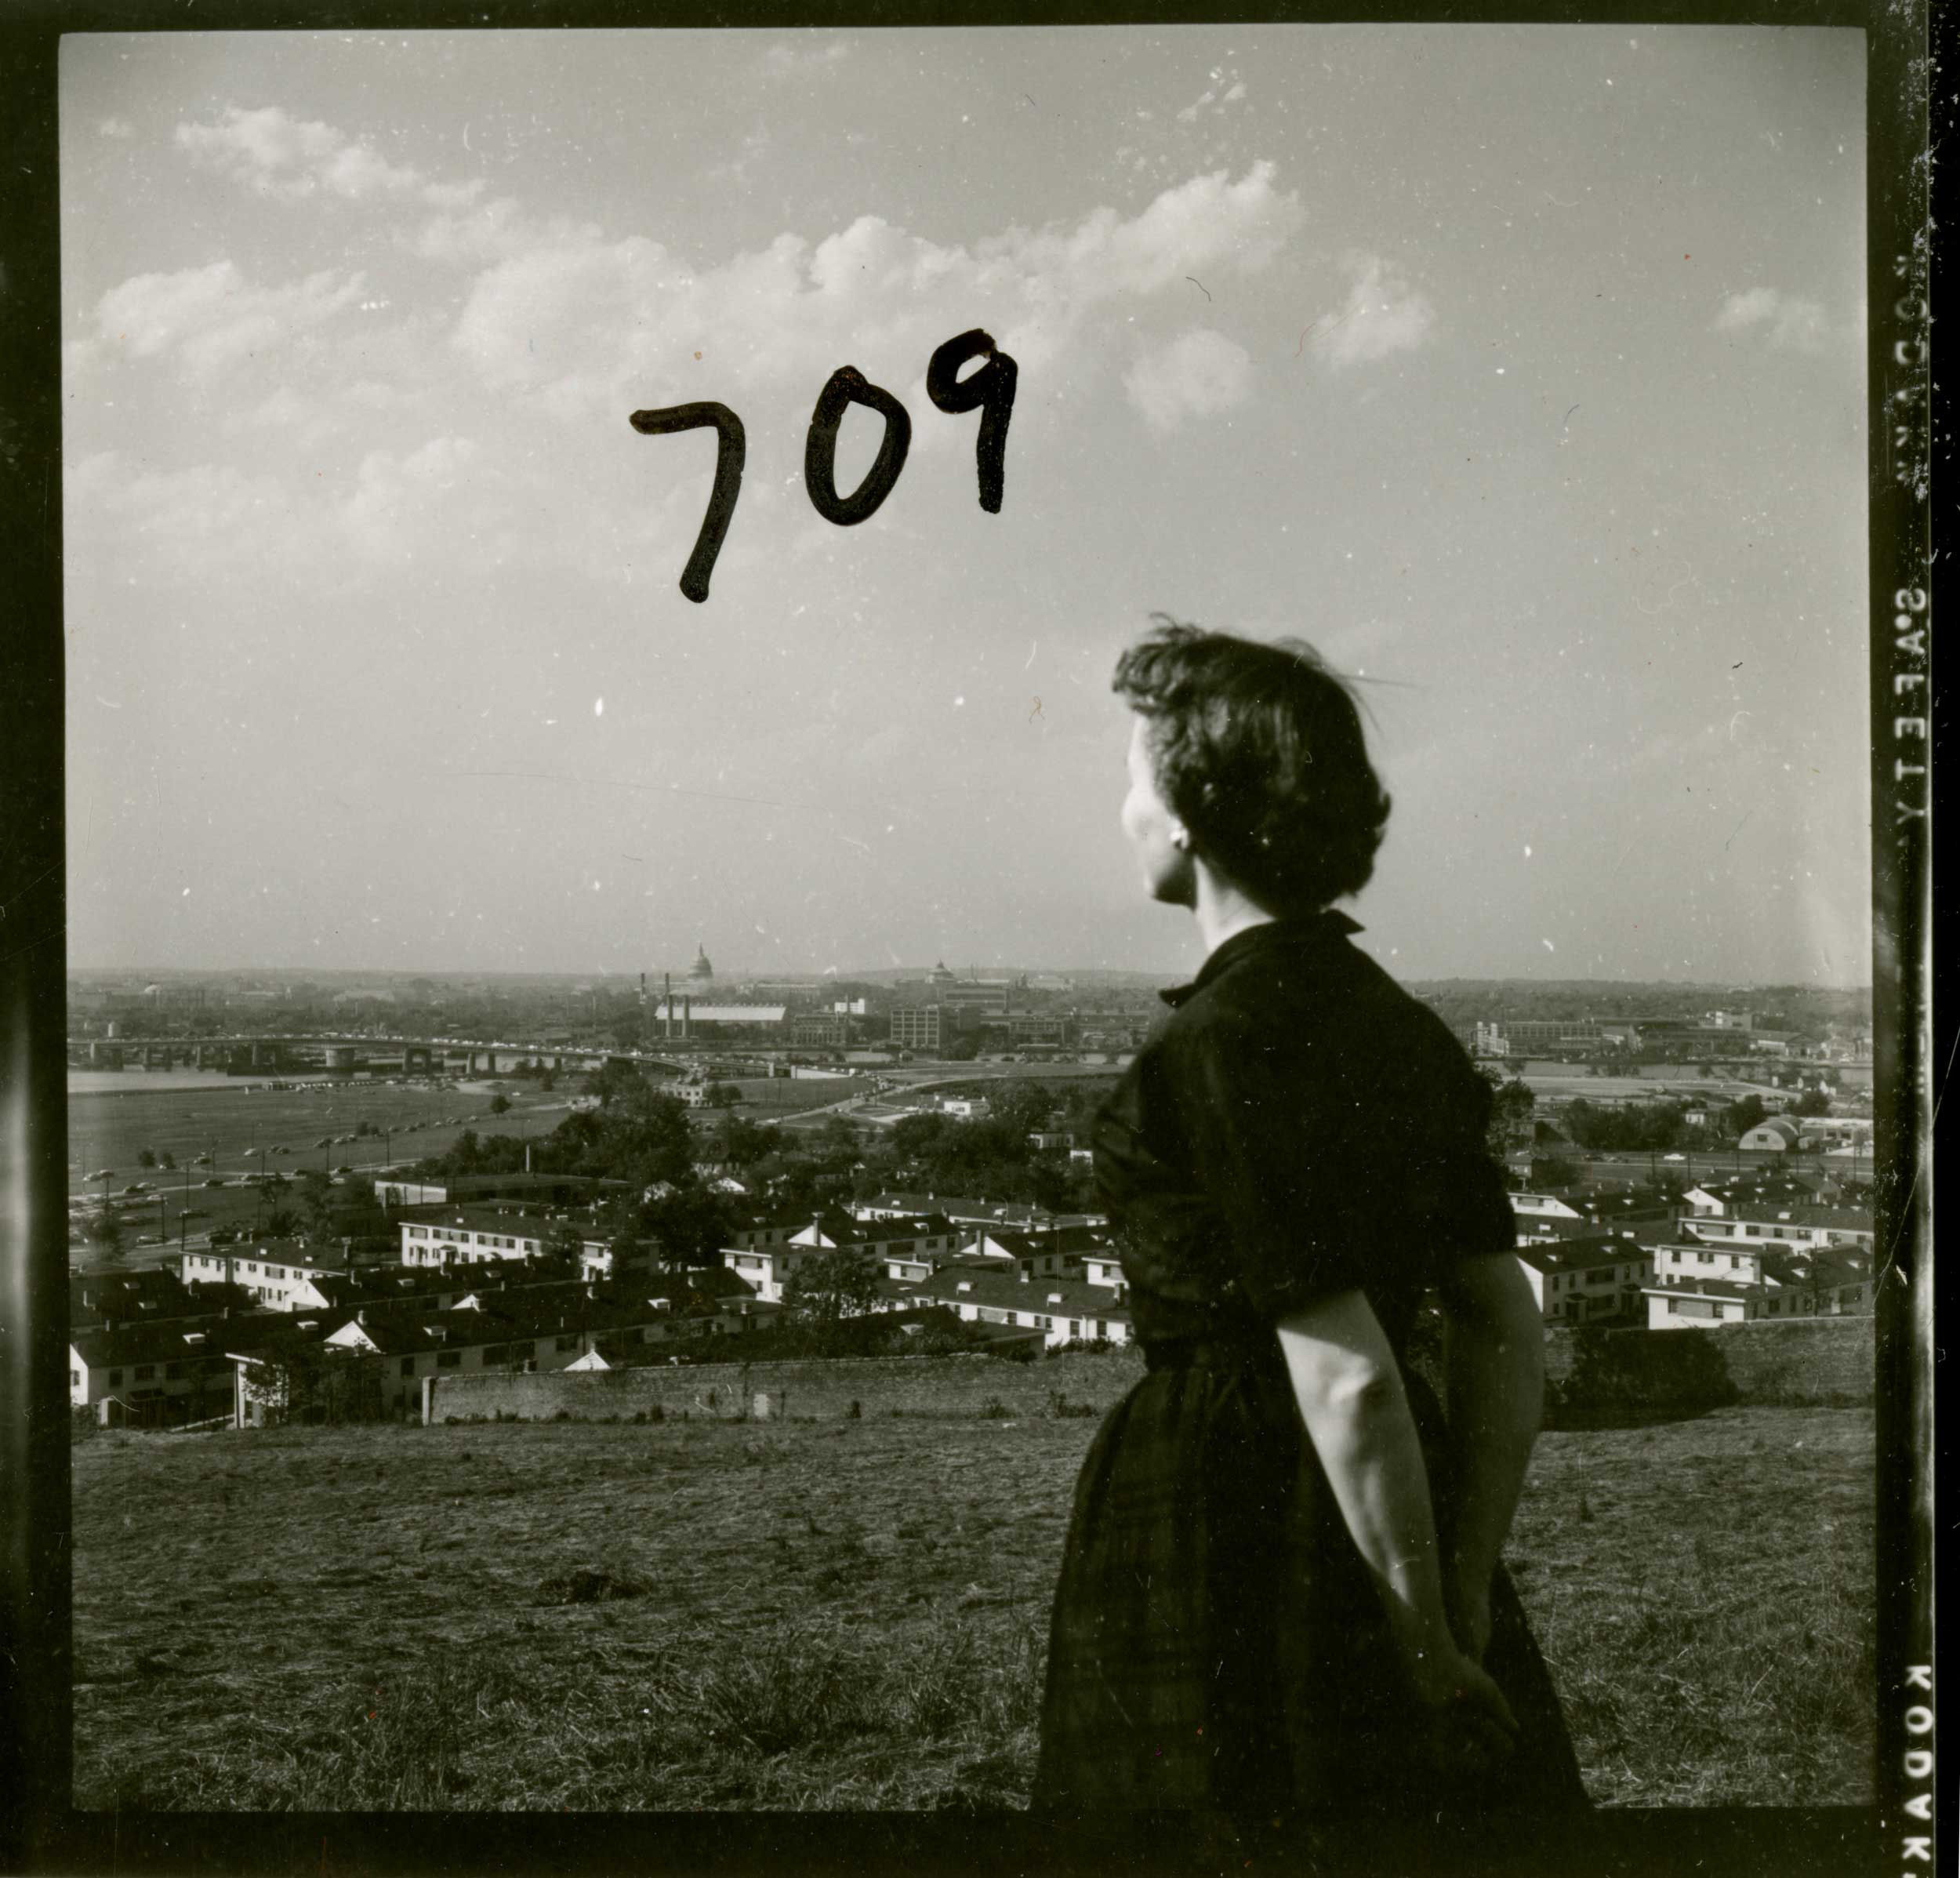 View of Washington, D.C. from St. Elizabeths. Photograph, 1955. A distant view of the urban landscape maintained separation between the hospital and the bustle and stress of the city. Courtesy U.S. National Library of Medicine.